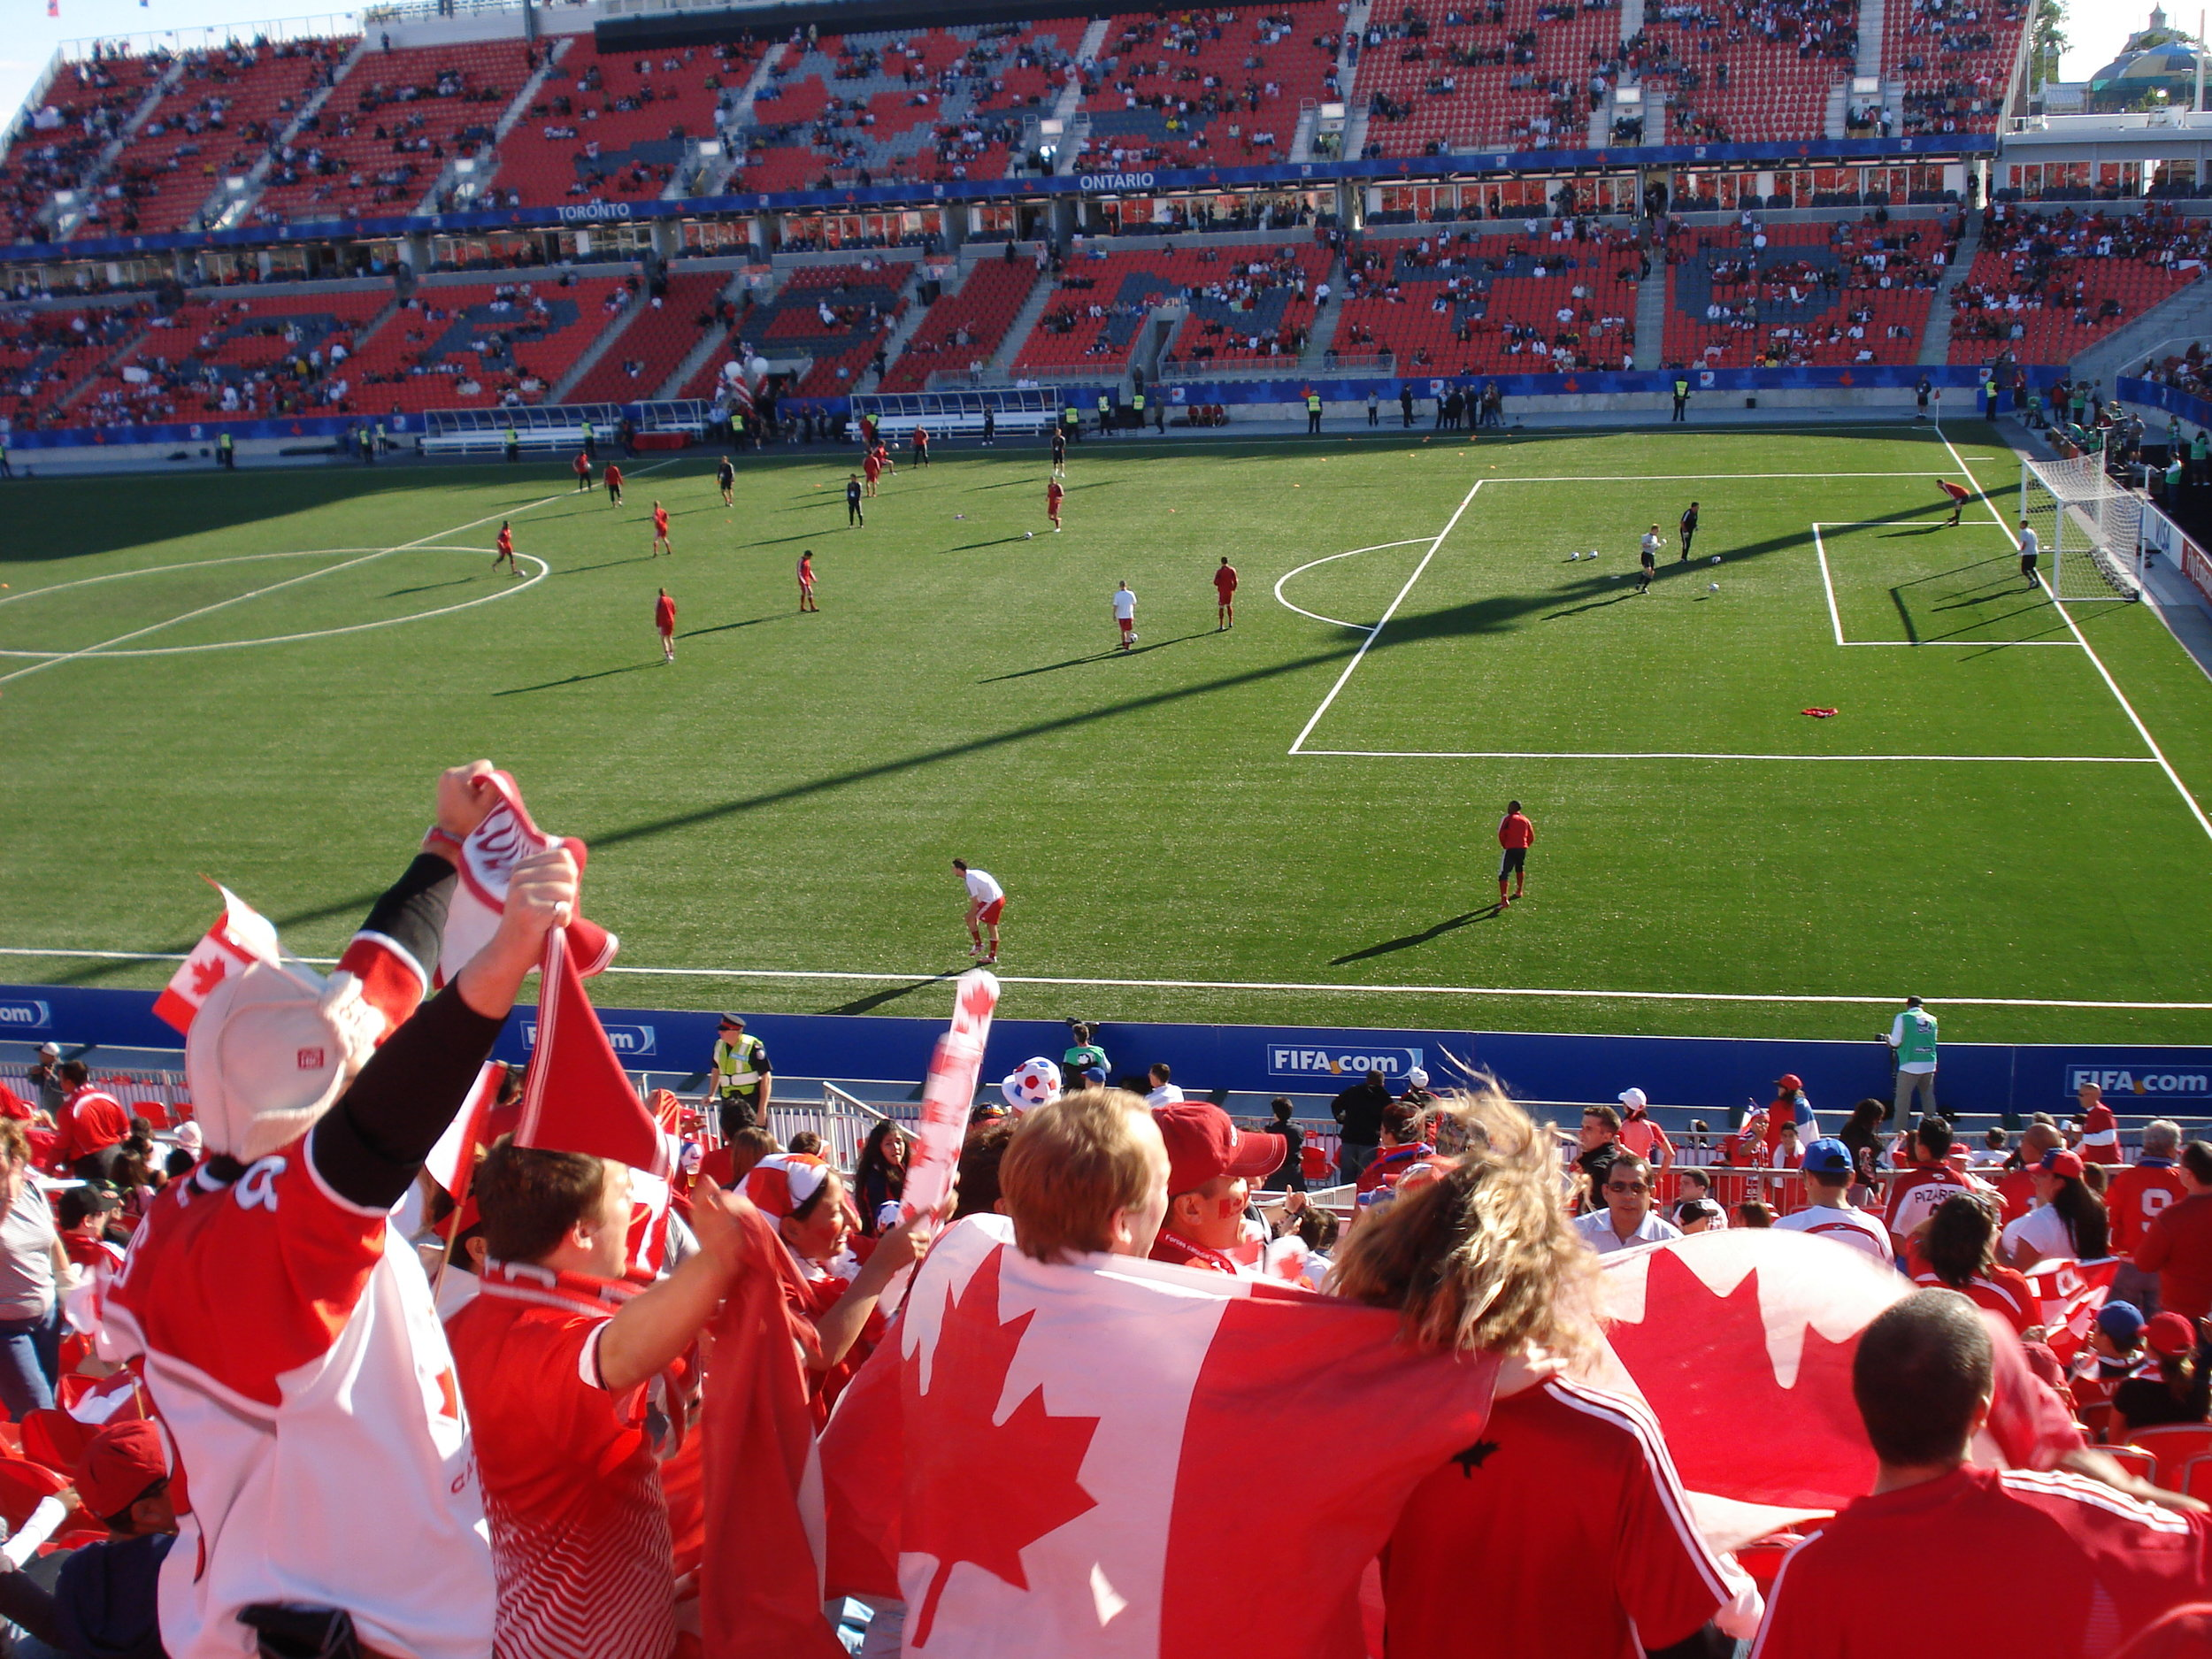 Canadian Soccer fans at BMO field.